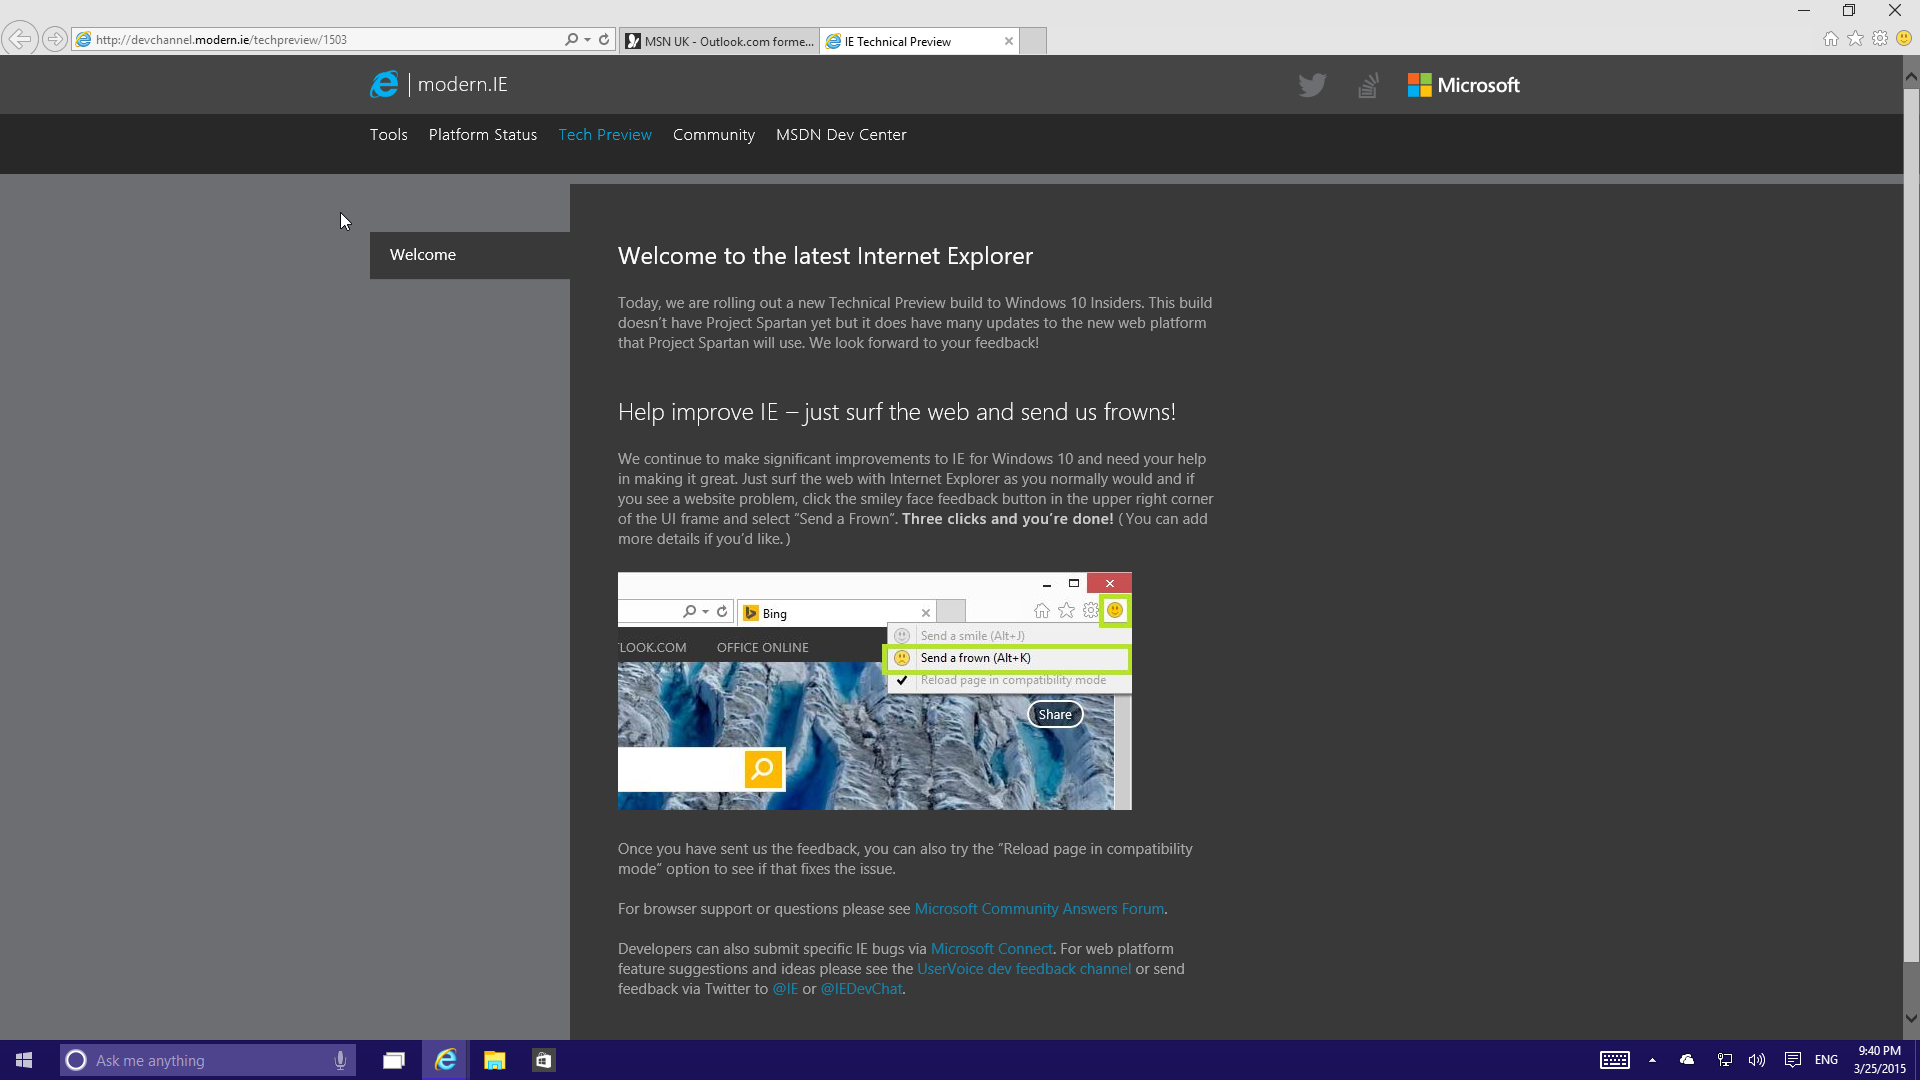 Windows 10 Technical Preview x64 Build 10041-2015-03-25-21-40-48